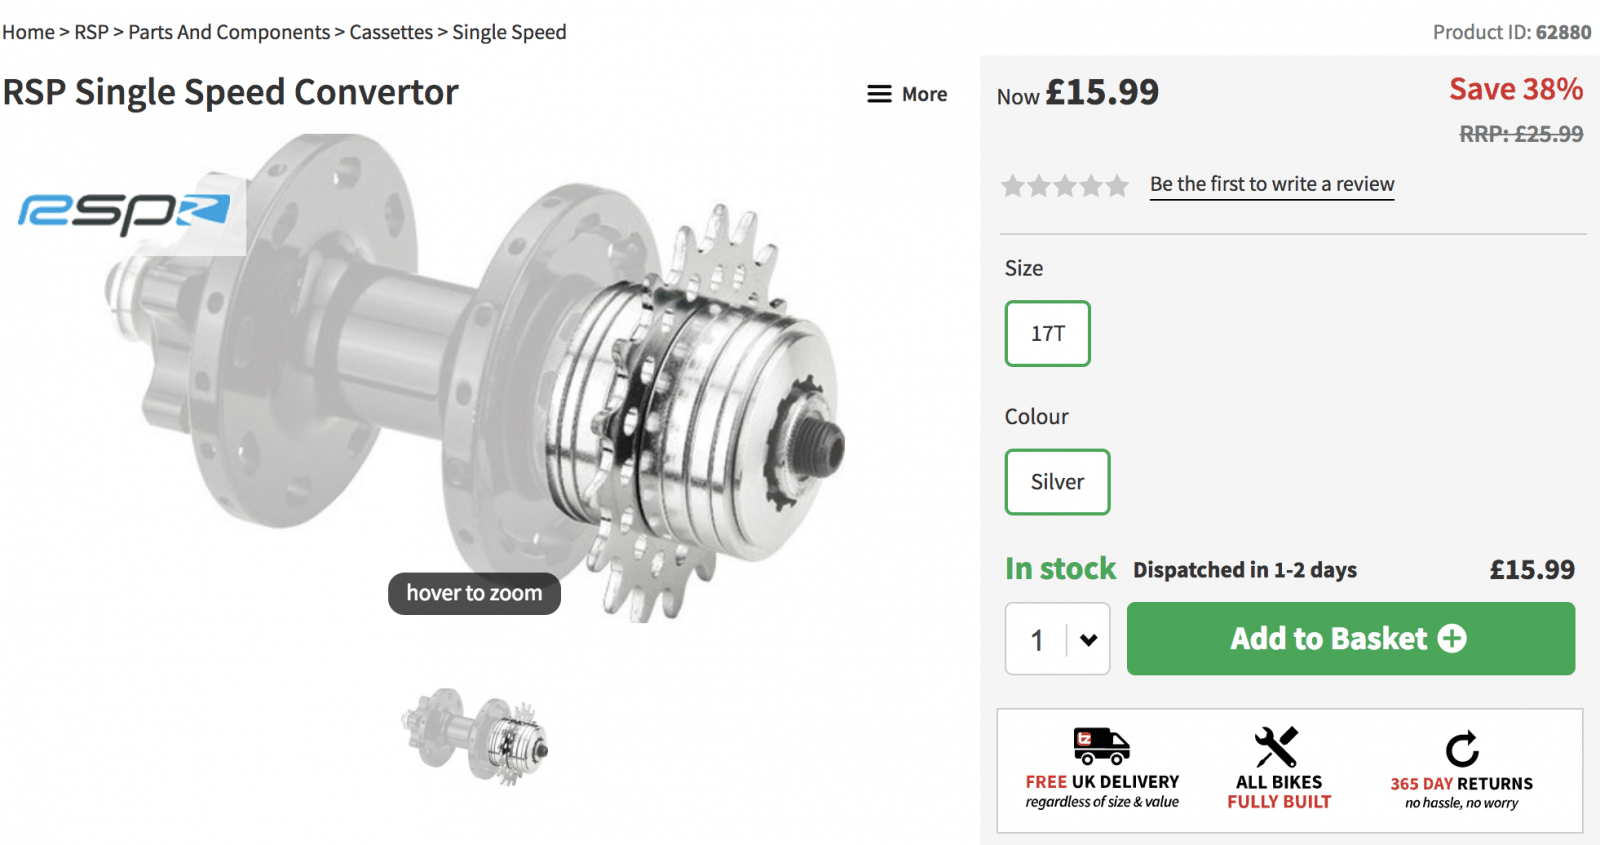 RSP Single Speed Converter - £15.99